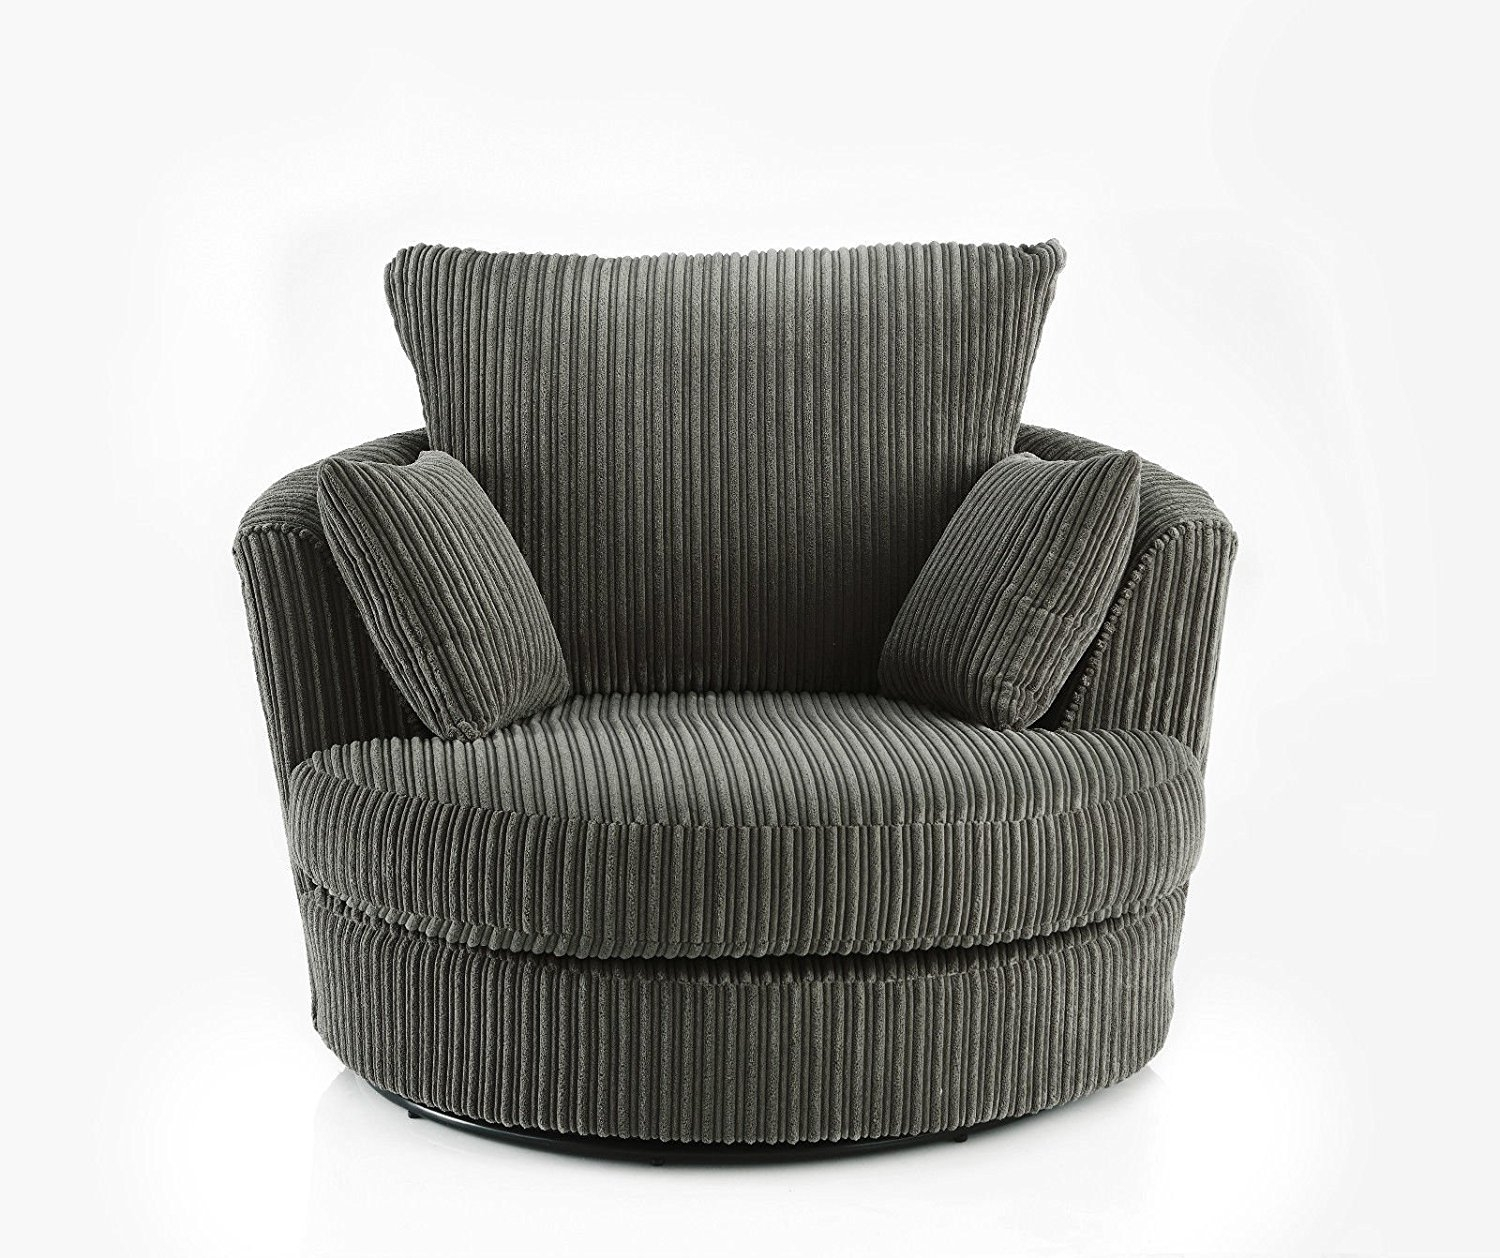 Round Swivel Snuggle Chair Home Chair Designs Within Snuggle Sofas (Image 6 of 15)